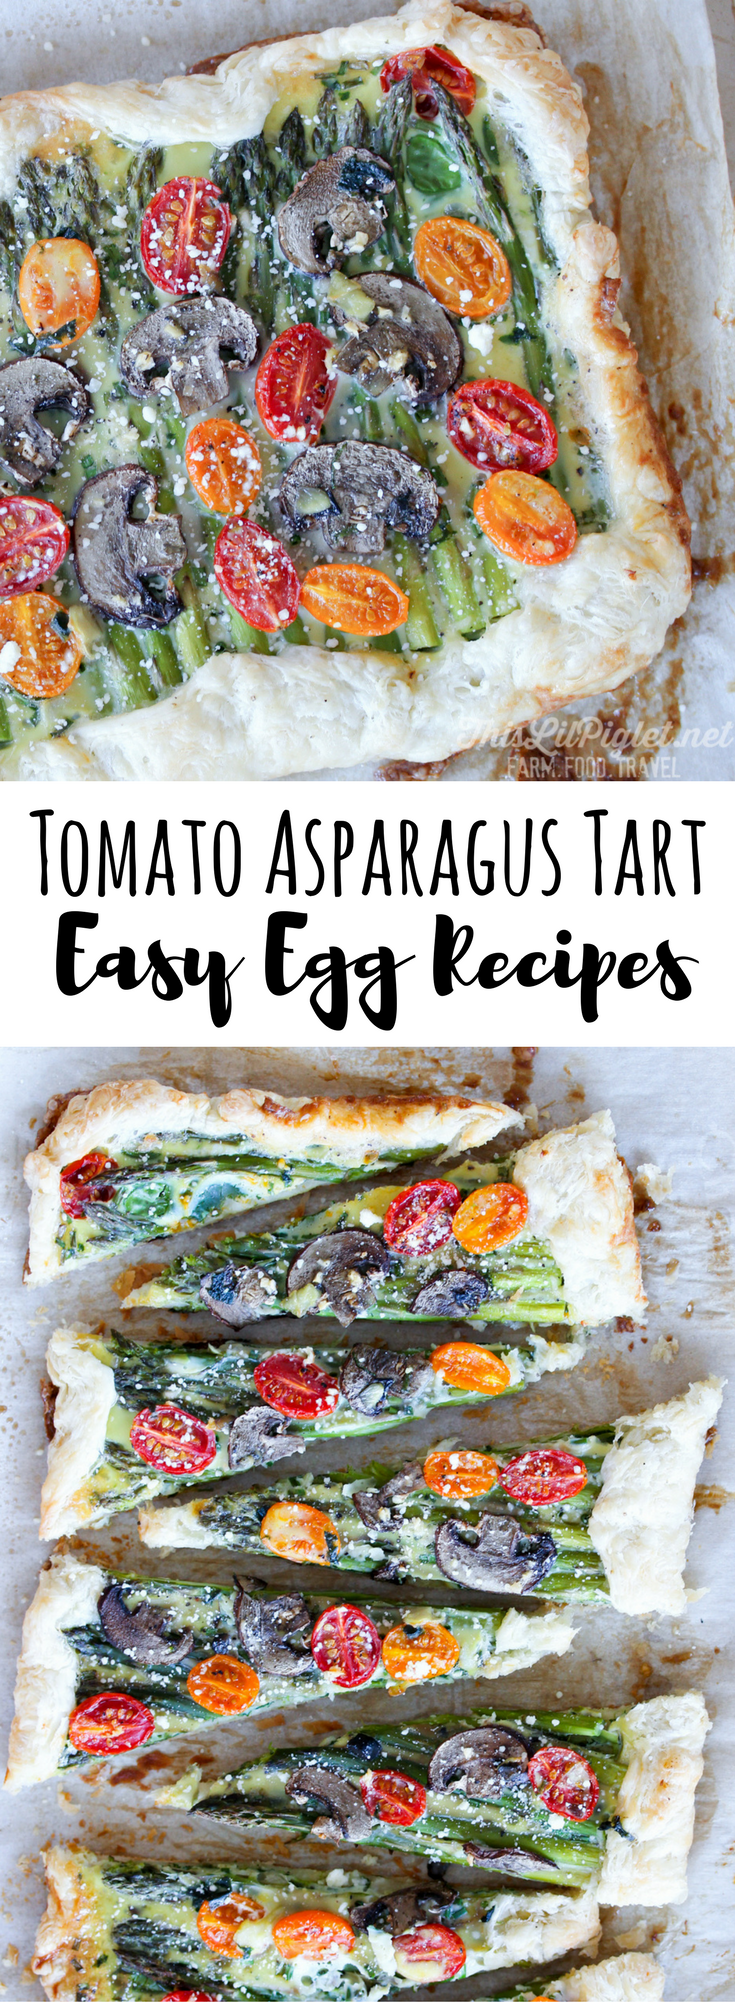 Tomato Asparagus Tart: Easy Christmas Recipes for Holiday Entertaining / /thislilpiglet.net